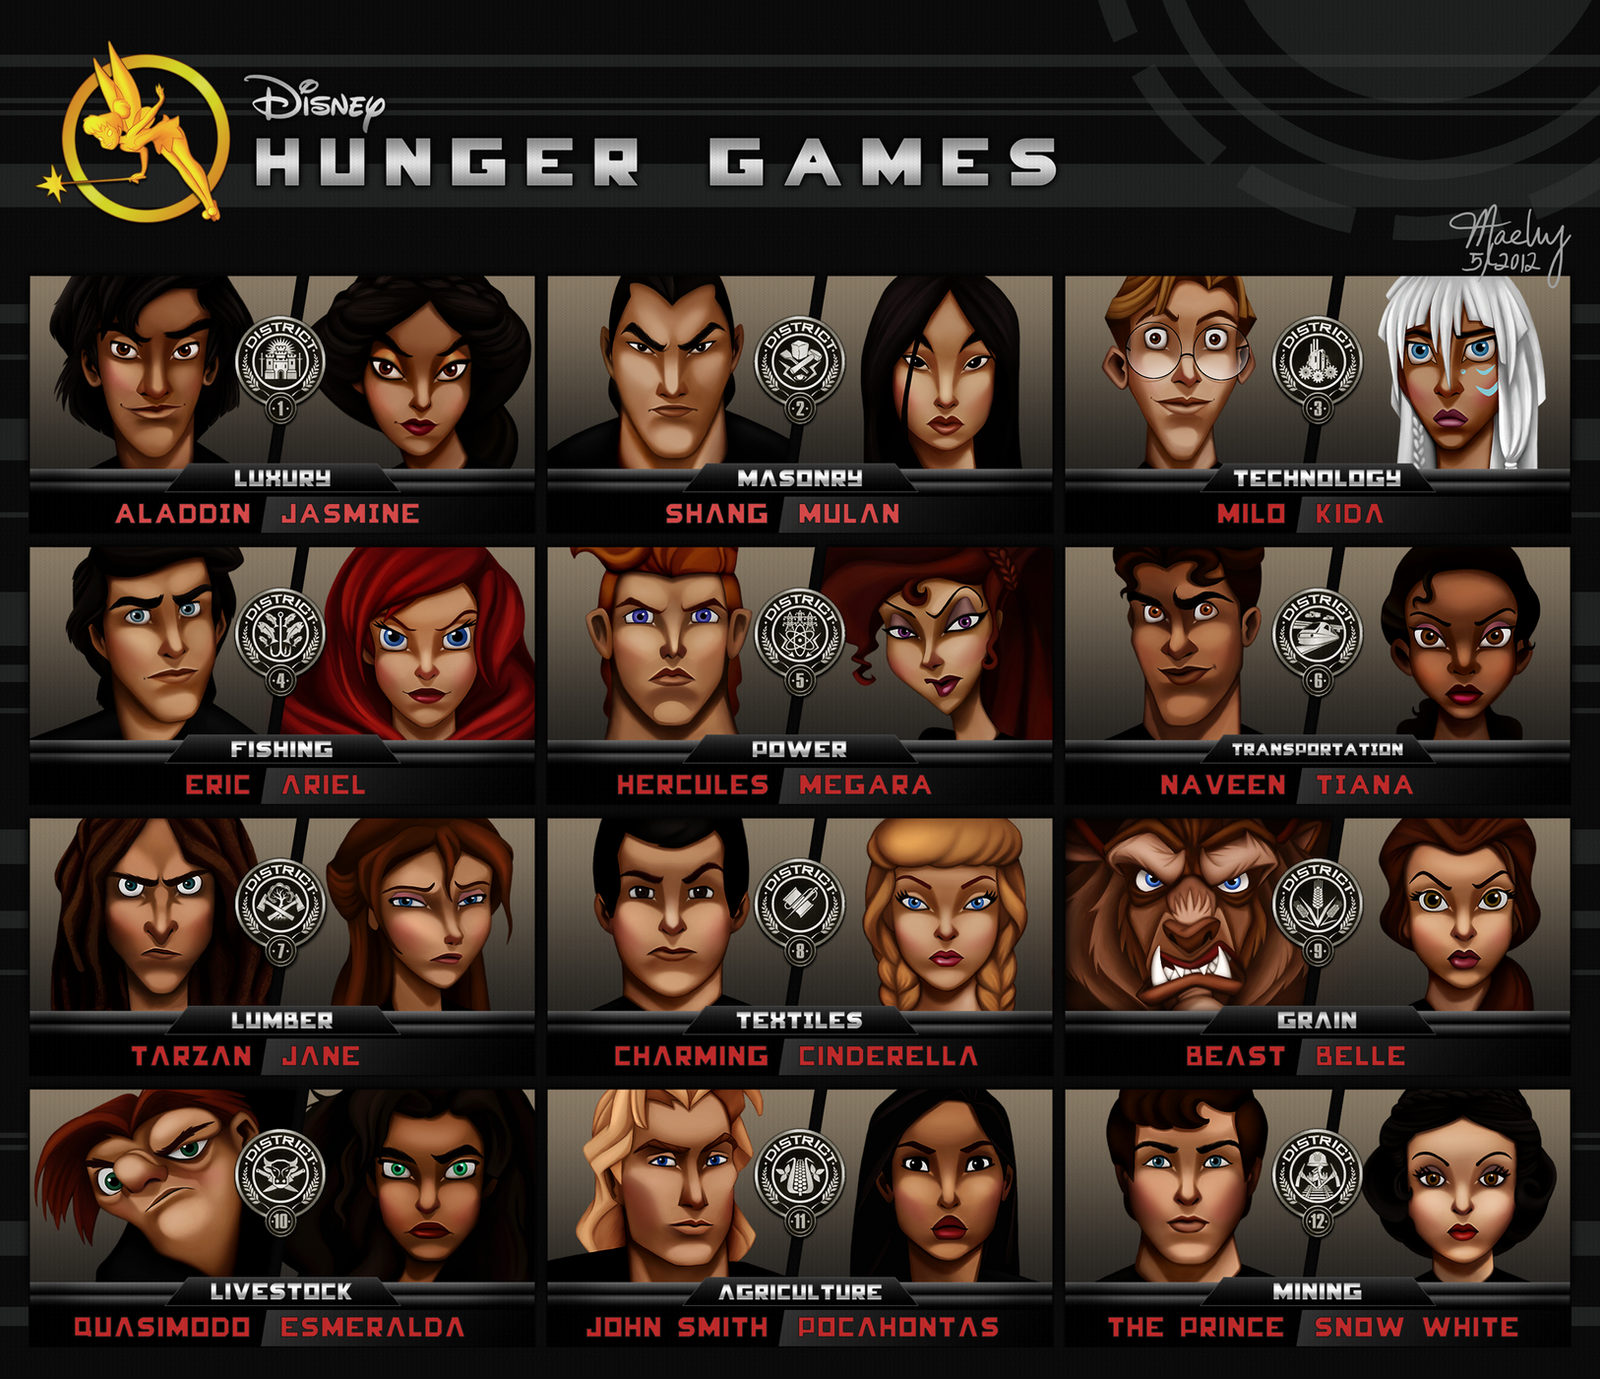 Disney Hunger Games by blastedgoose